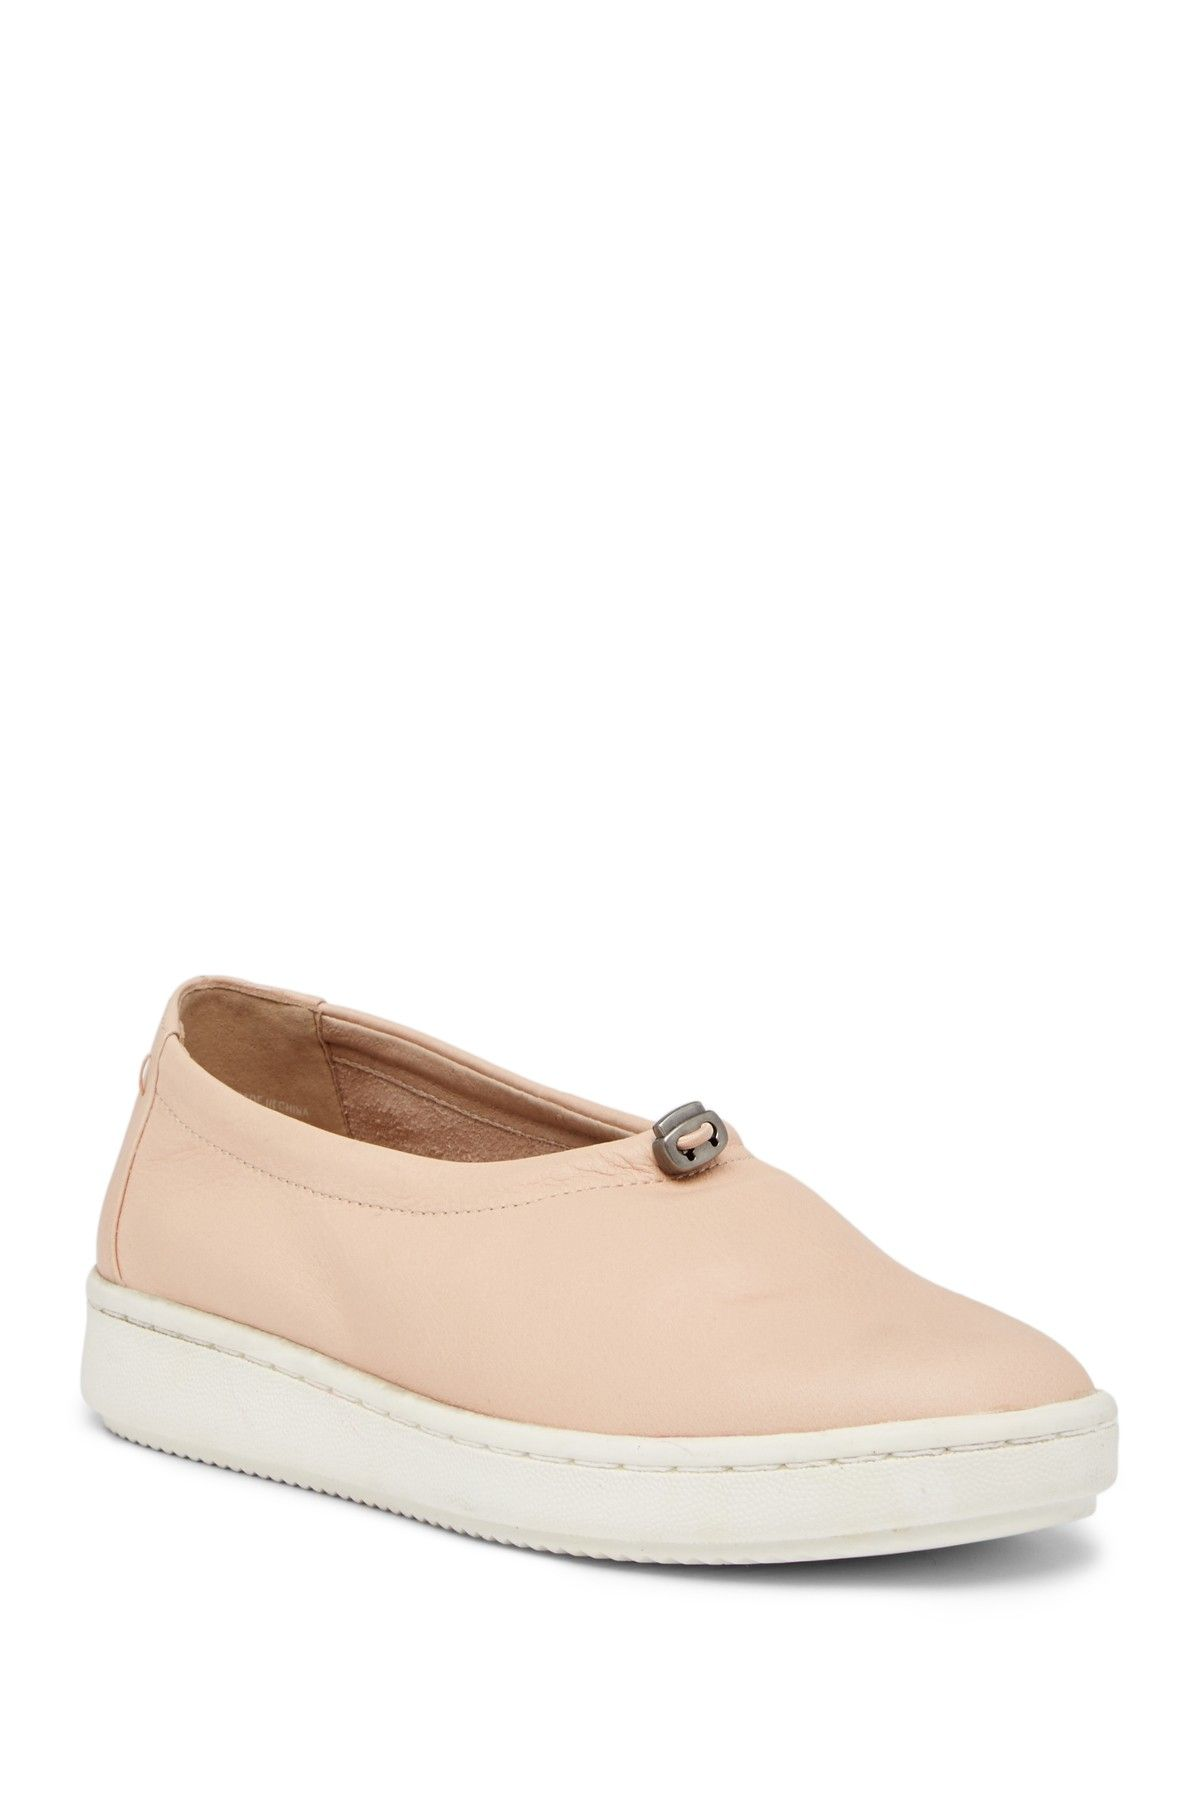 Eileen Fisher Washed Leather Sneaker